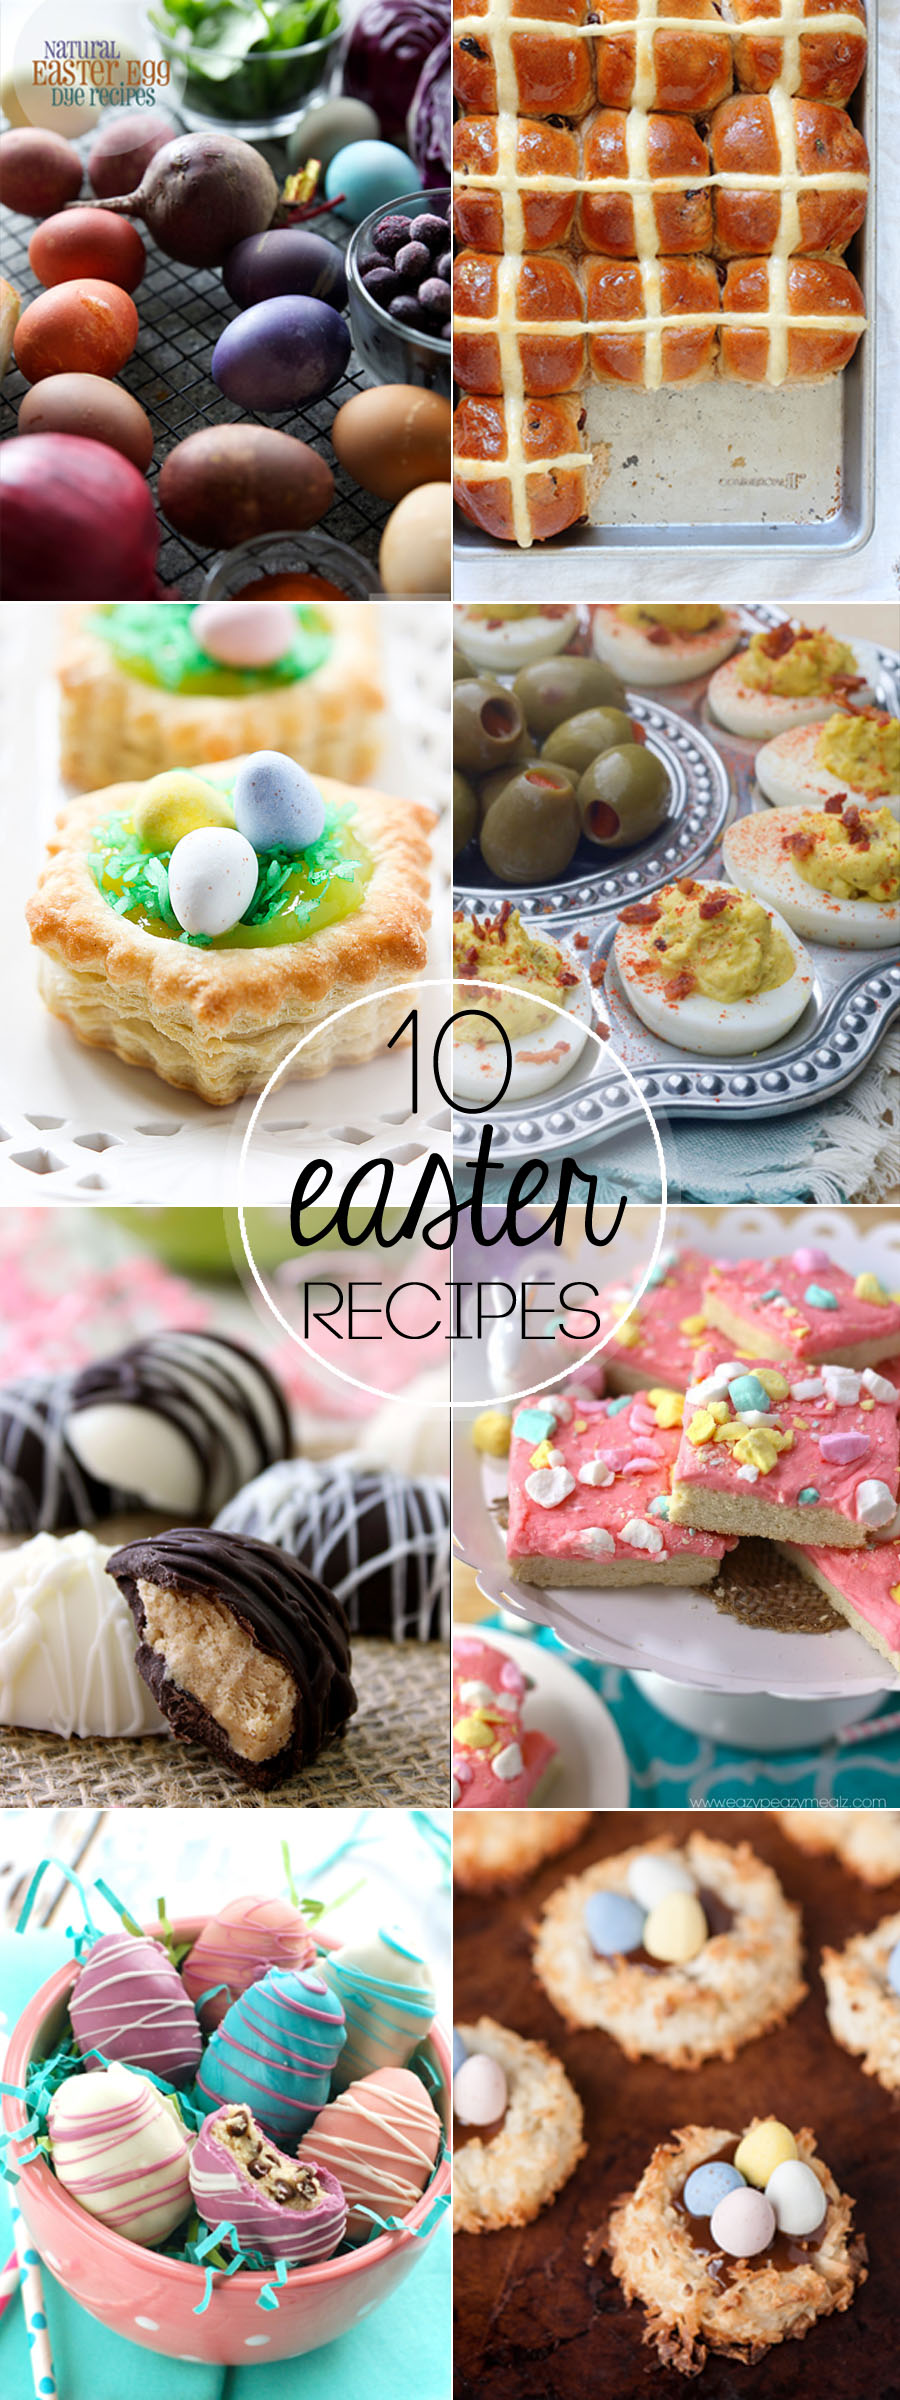 10 beautiful Easter Recipes to complete your holiday meal!